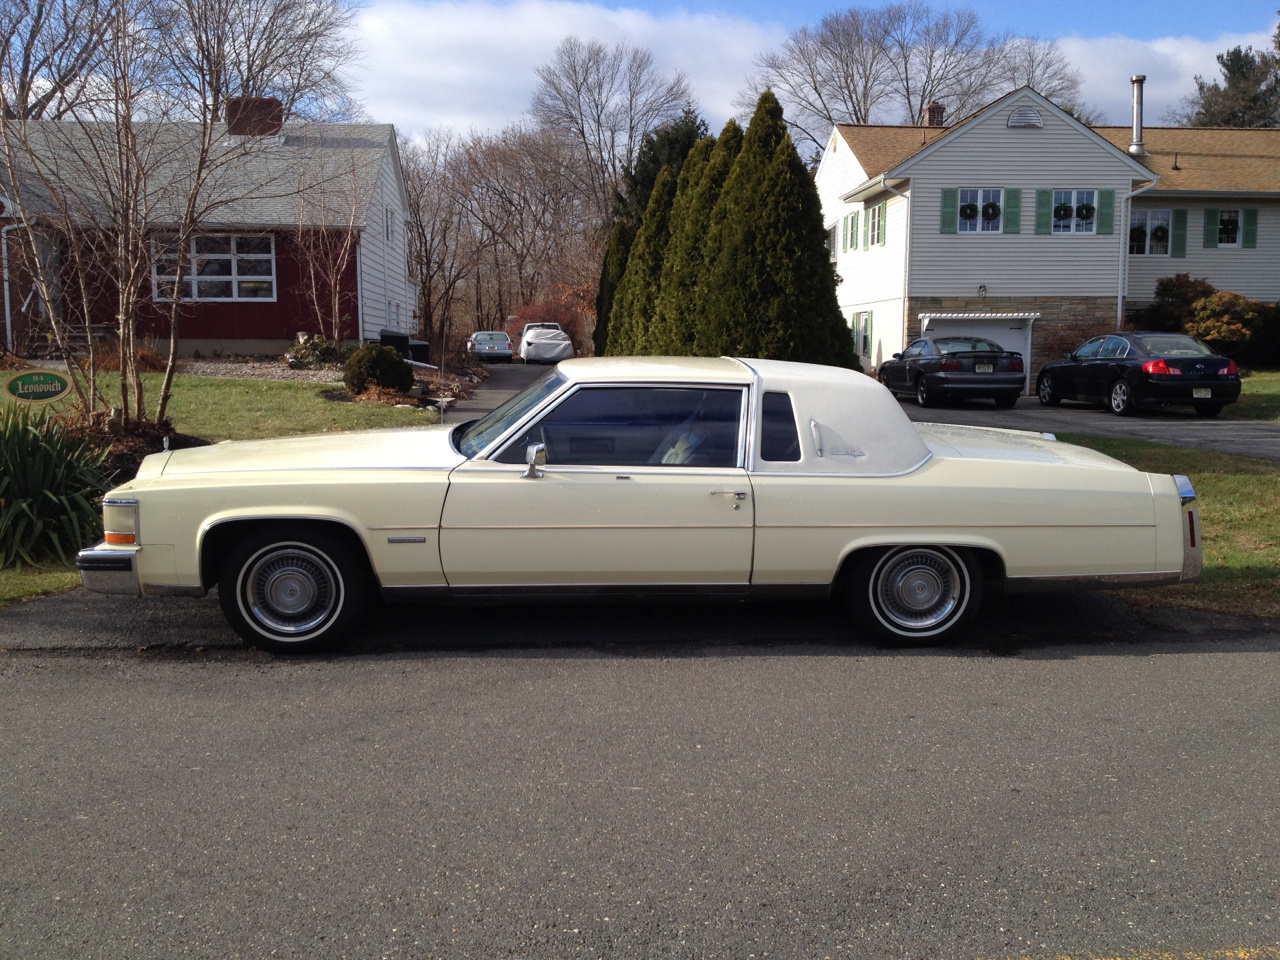 1988 Lincoln Town Car as well 2013 Sorento eu Version besides Watch moreover 1970 Ford Thunderbird 2 Door Hardtop together with Chrysler US. on 1978 lincoln town car for sale